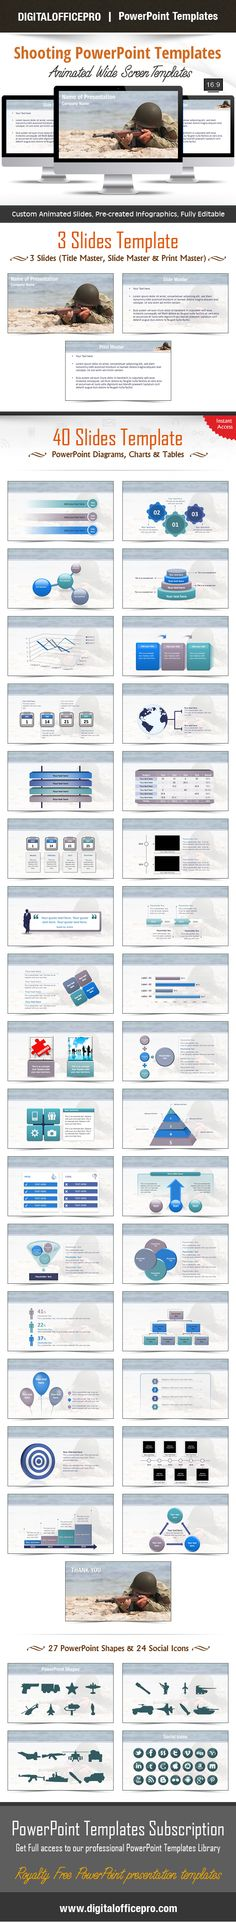 Shooting Makeup Powerpoint Template Backgrounds